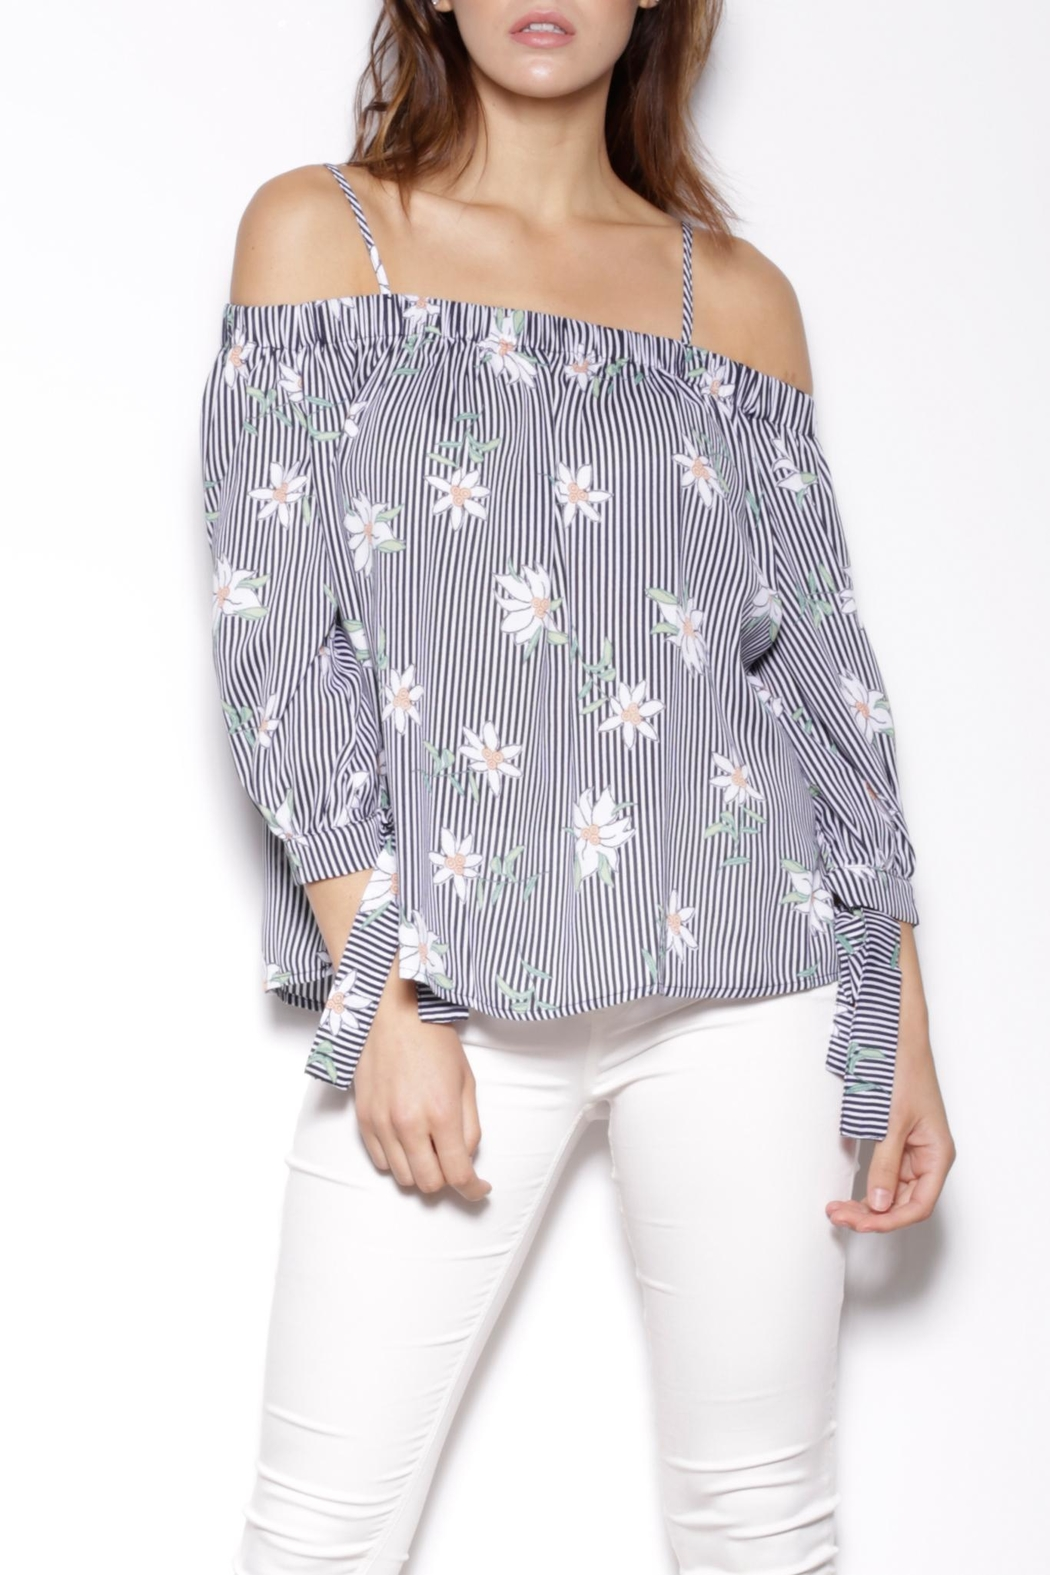 Pink Martini Flowers Stripes Blouse - Main Image